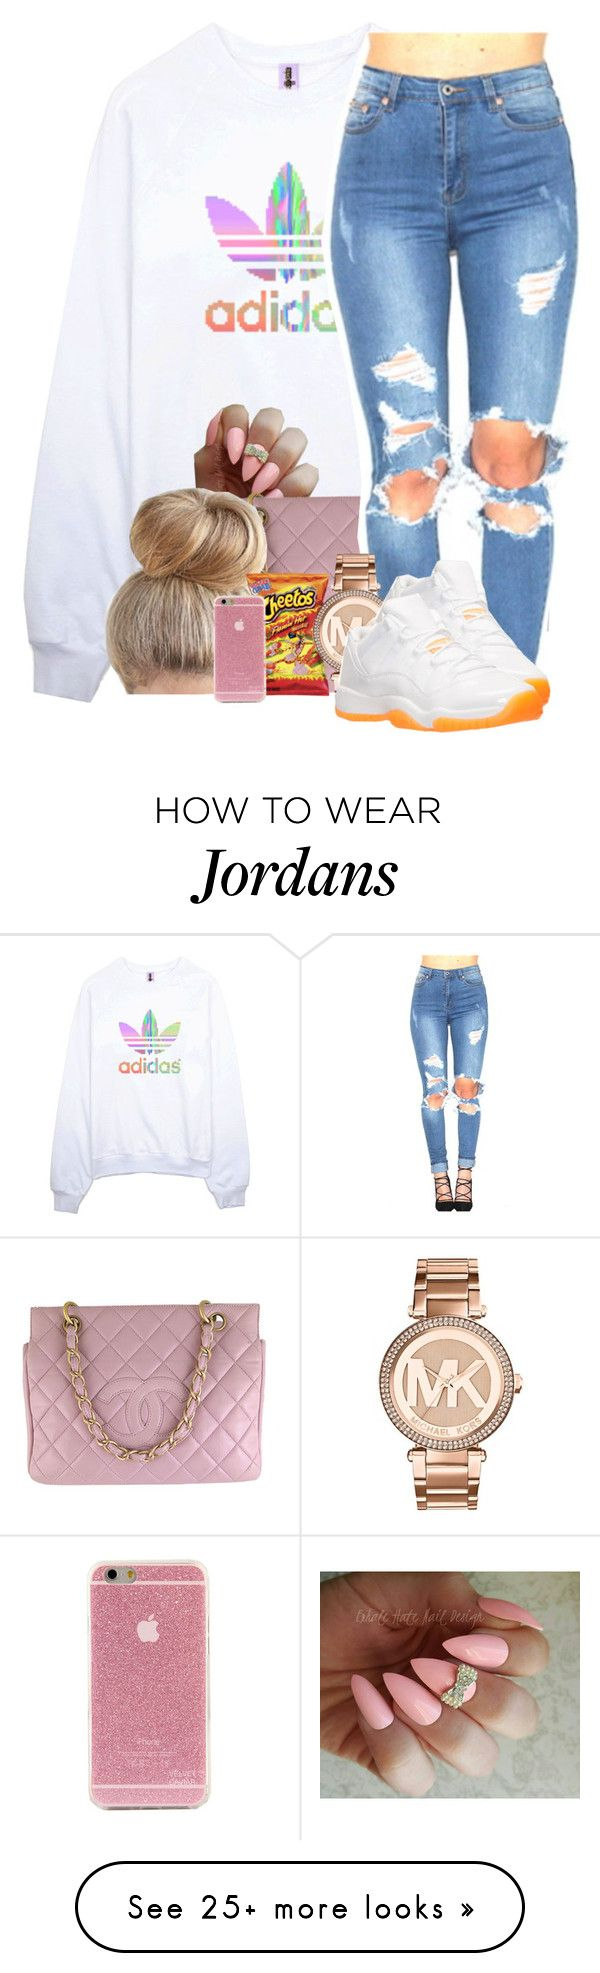 restaurant bar du port de jordan - 1000+ ideas about Girls Wearing Jordans on Pinterest | Jordans ...